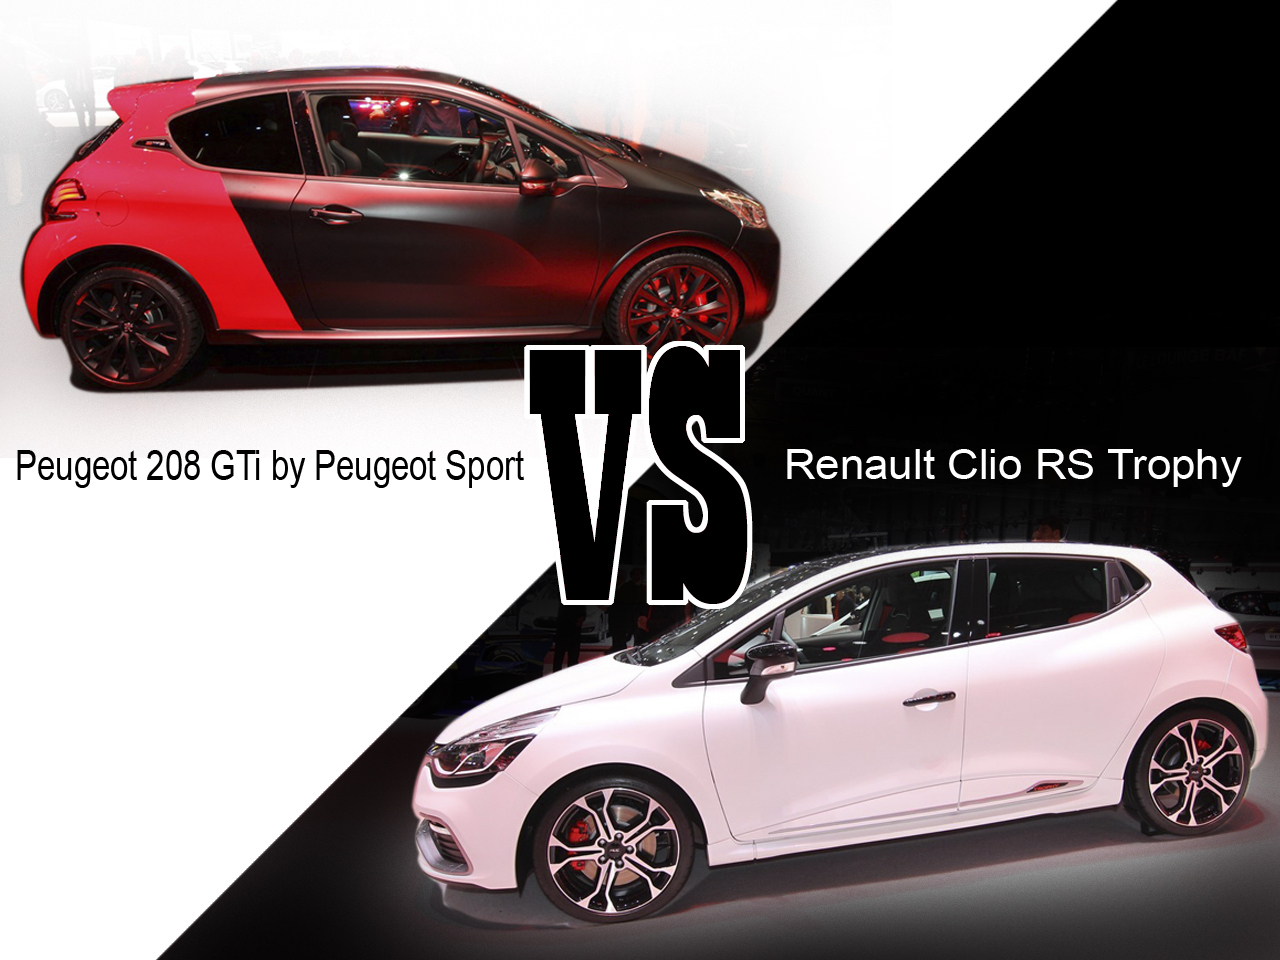 208 gti by peugeot sport vs clio rs trophy d j le match gen ve l 39 argus. Black Bedroom Furniture Sets. Home Design Ideas